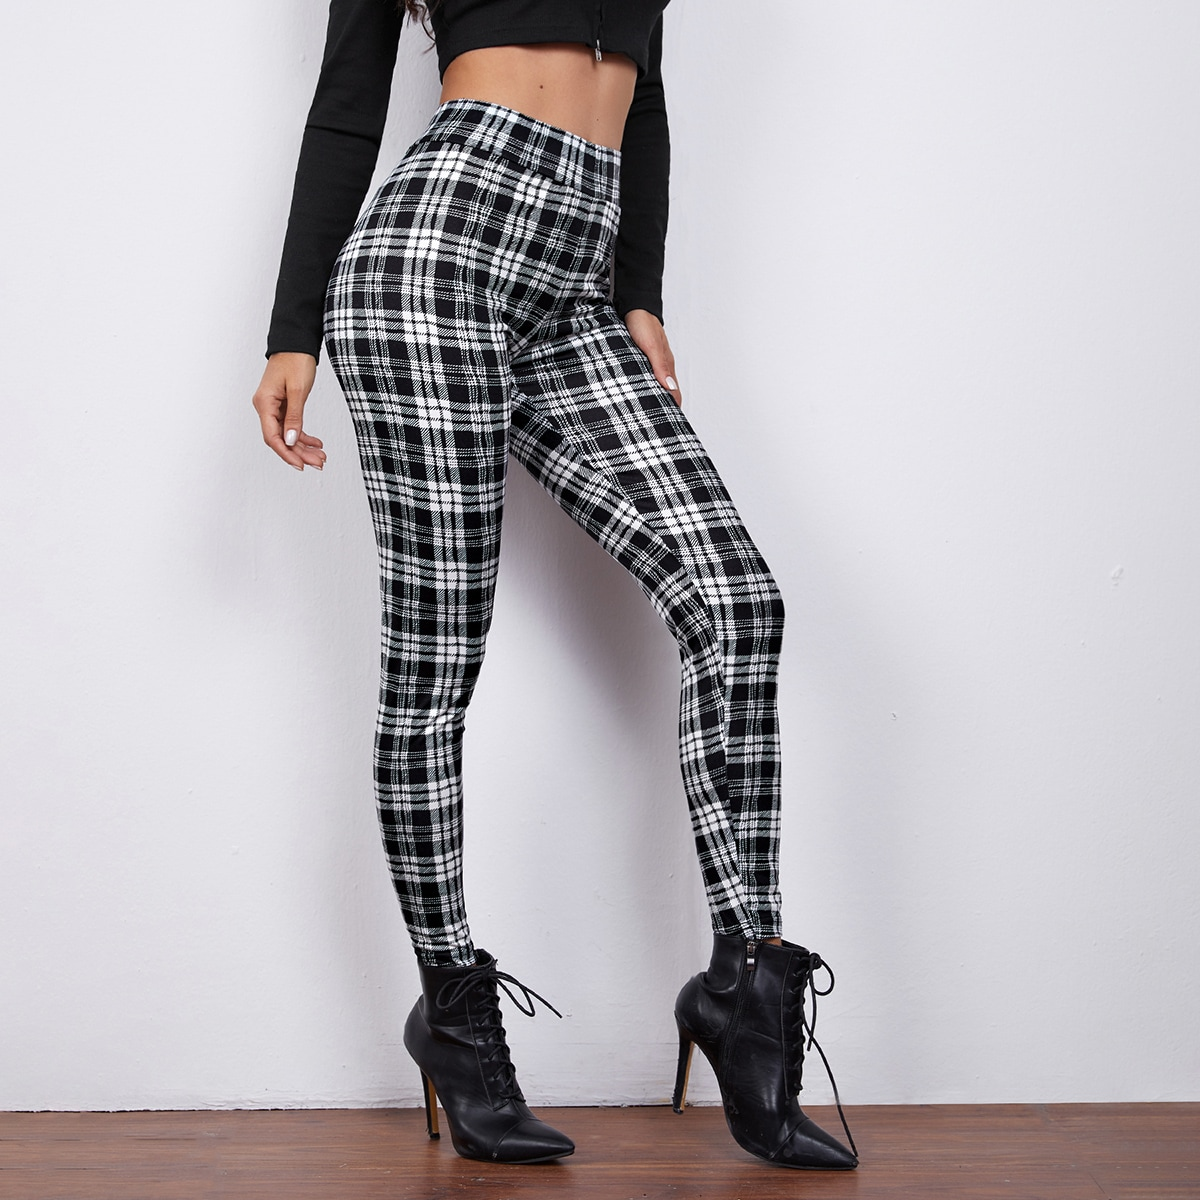 High Waist Plaid Leggings